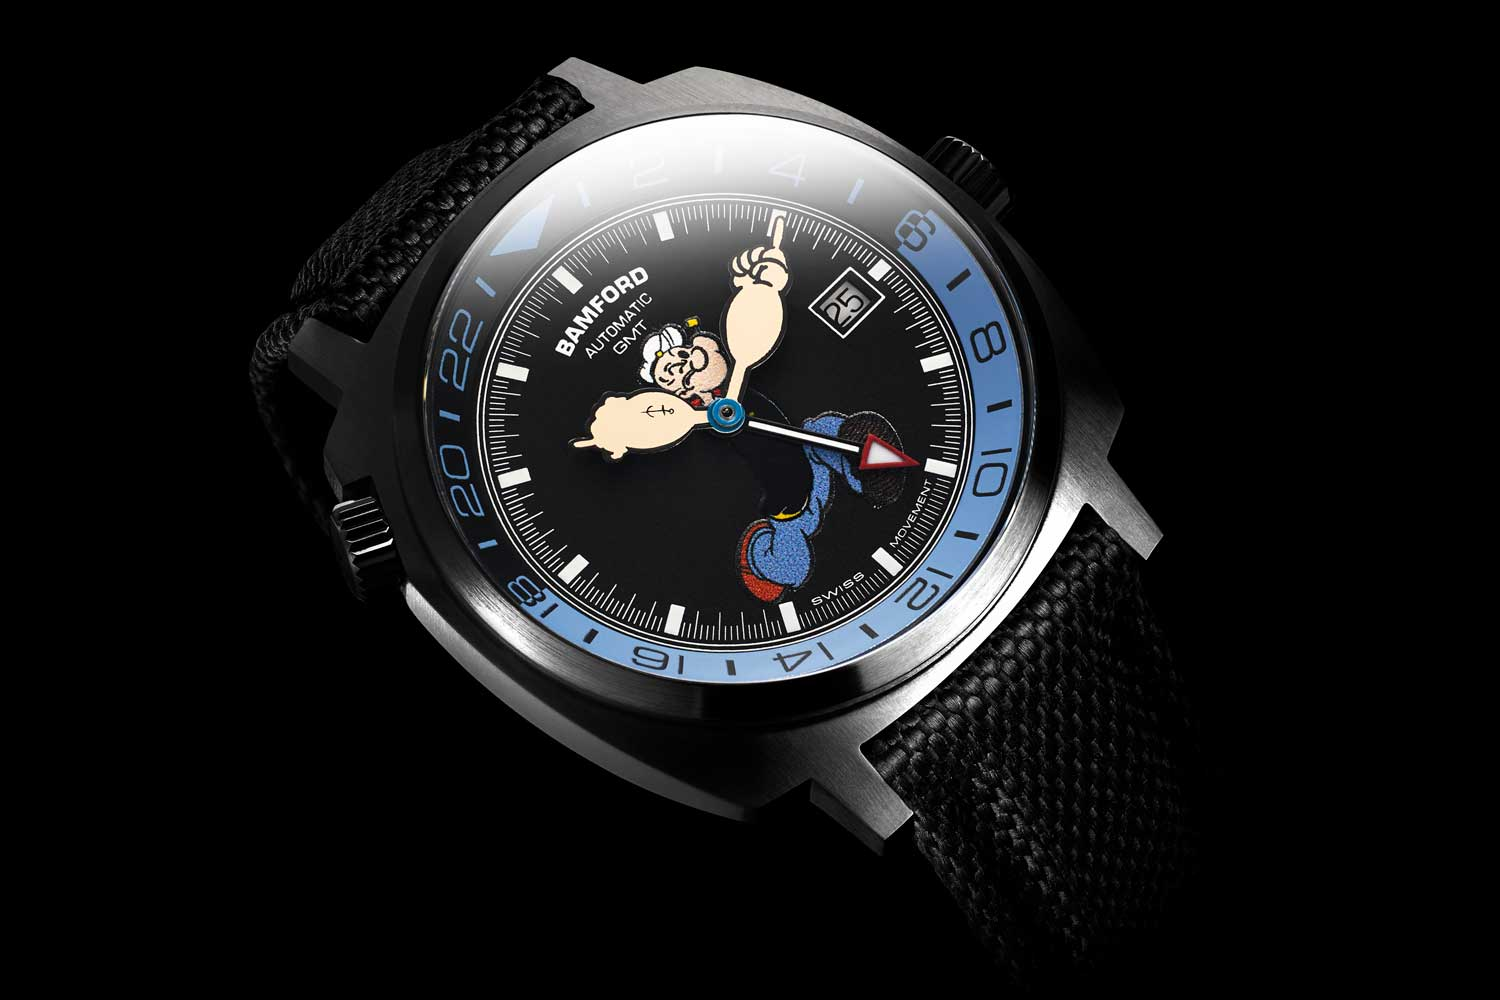 The new Popeye GMT is decked out in blue and black with Popeye's spinach-enabled super strong arms acting as the minute and hour hands.